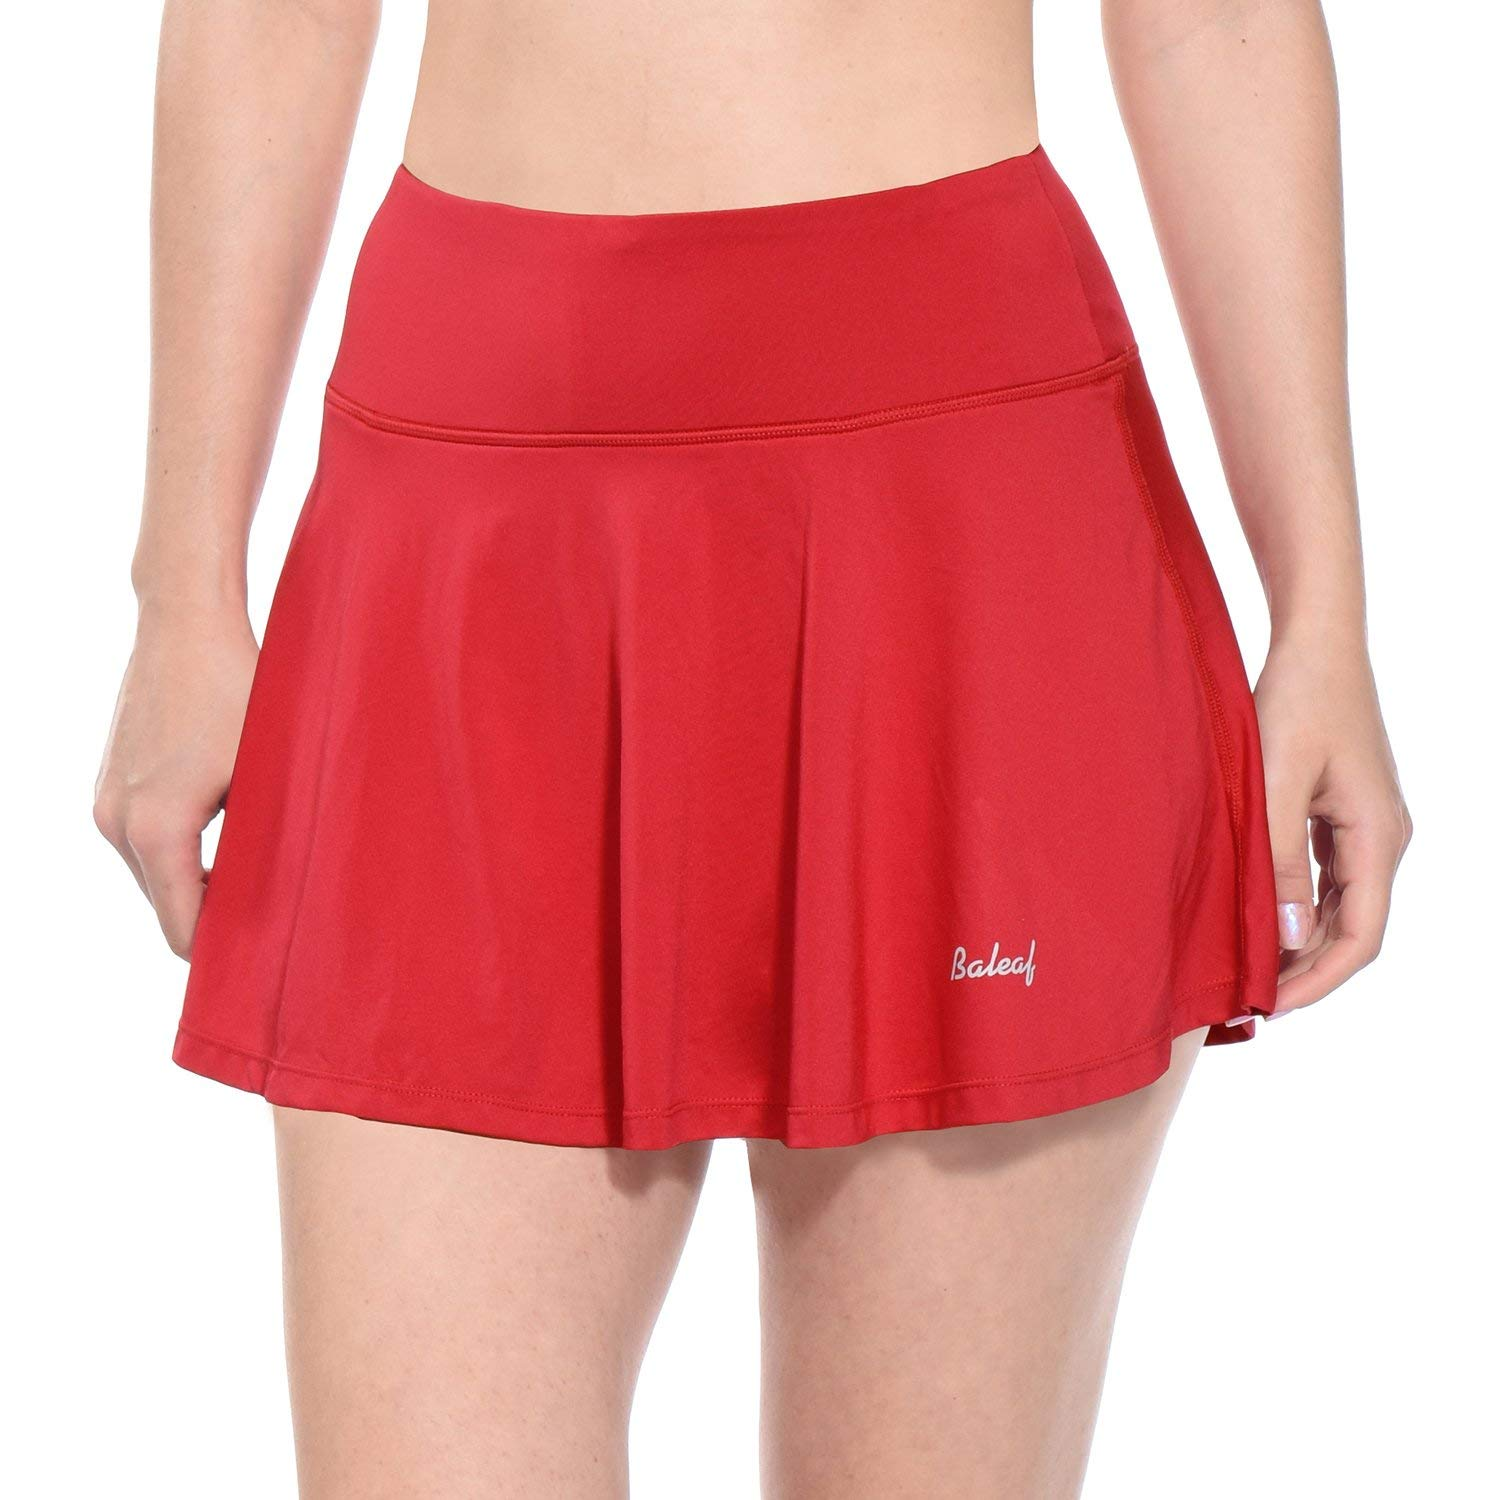 BALEAF Women's Athletic Skort Pleated Tennis Golf Skirt with Pockets Red Size XS by BALEAF